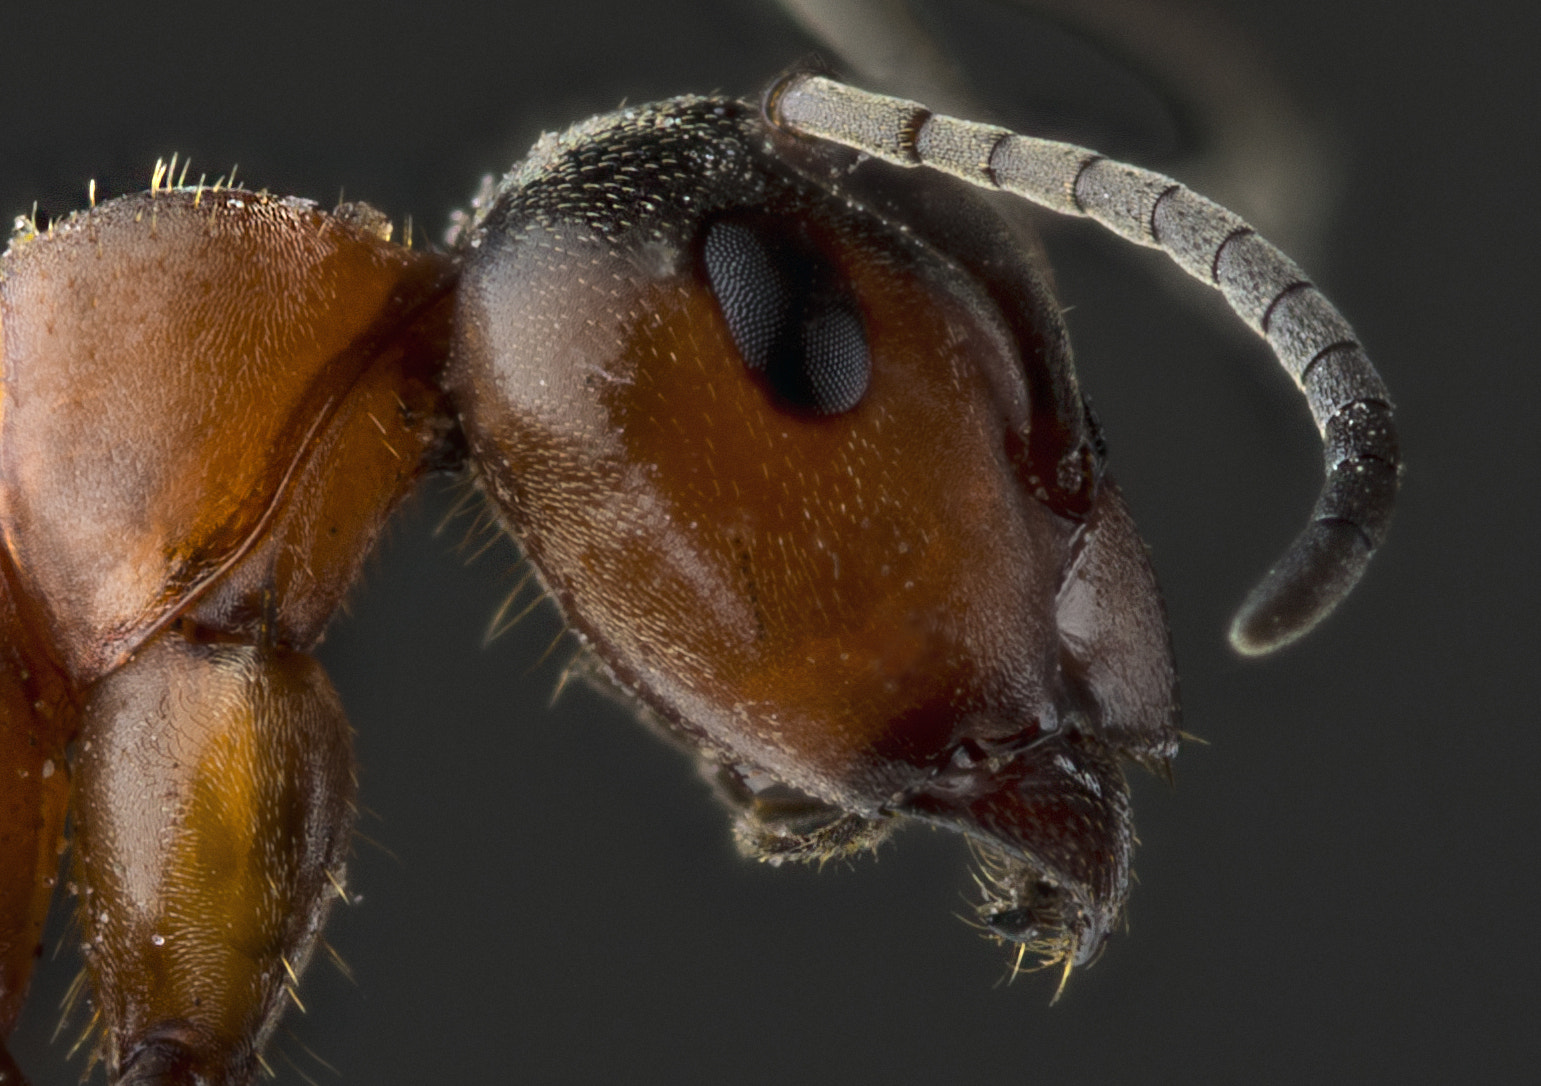 Photograph Ant by Mikael Sundberg on 500px